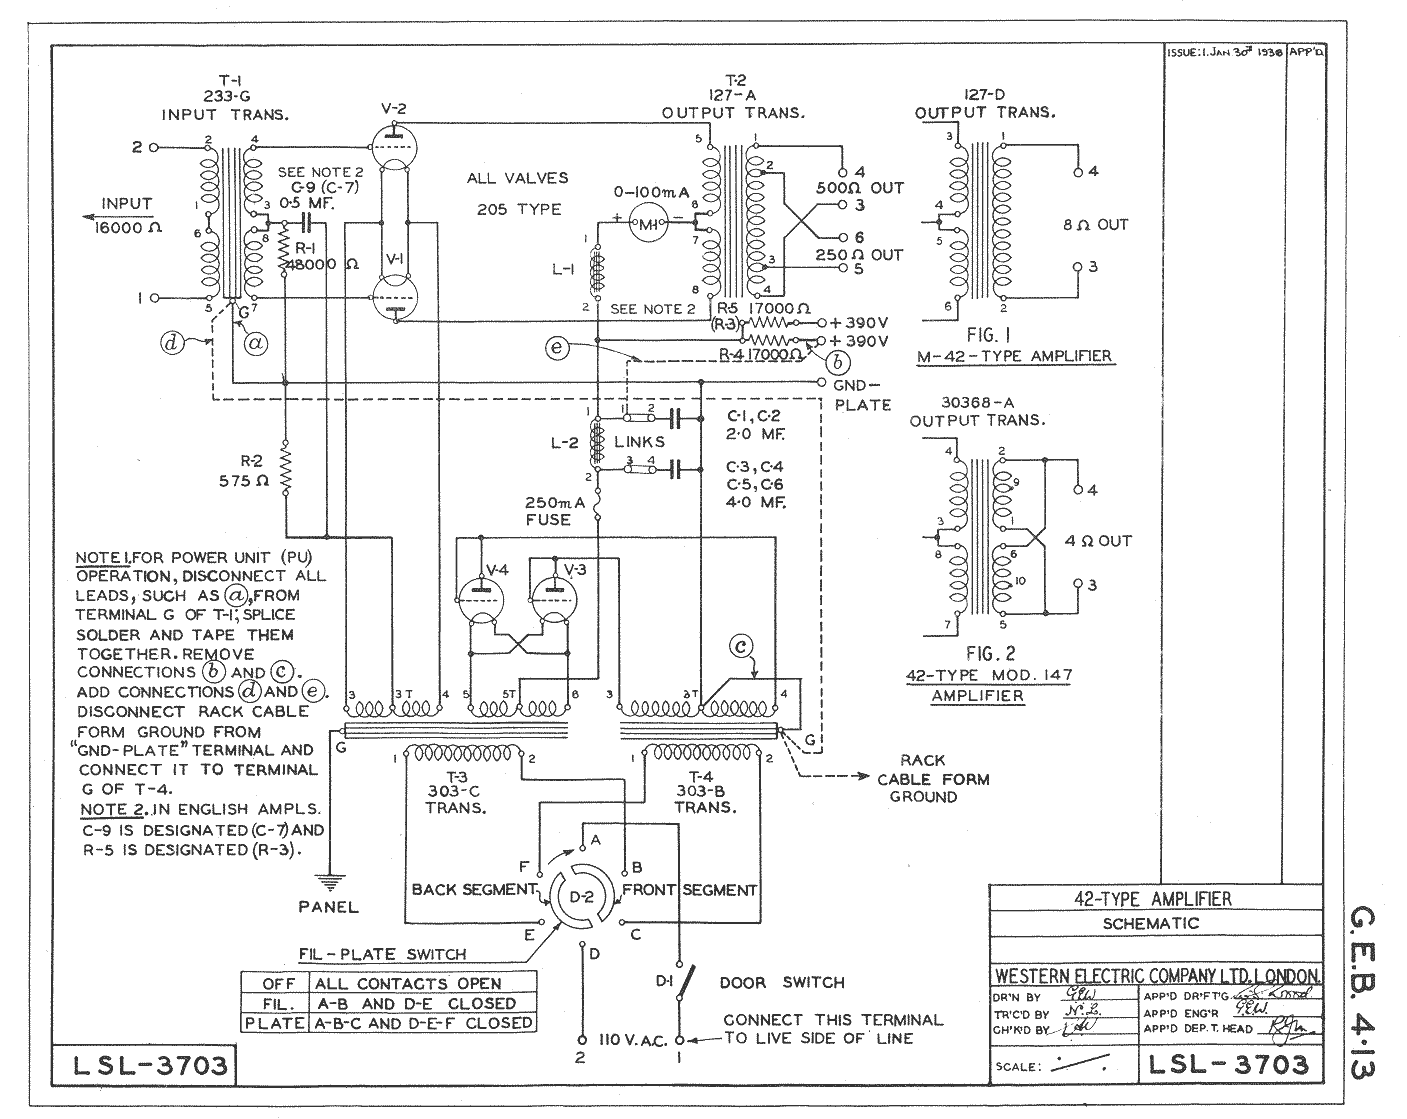 Wiring Diagram Pioneer Deh 34 further Pioneer Deh 1500 Wiring Diagram as well Wiring Diagram For Pioneer Deh P3700mp likewise Pioneer Super Tuner 3 Wiring Diagram furthermore Pioneer Avh P1400dvd Wiring Harness. on wiring diagram for pioneer mosfet 50wx4